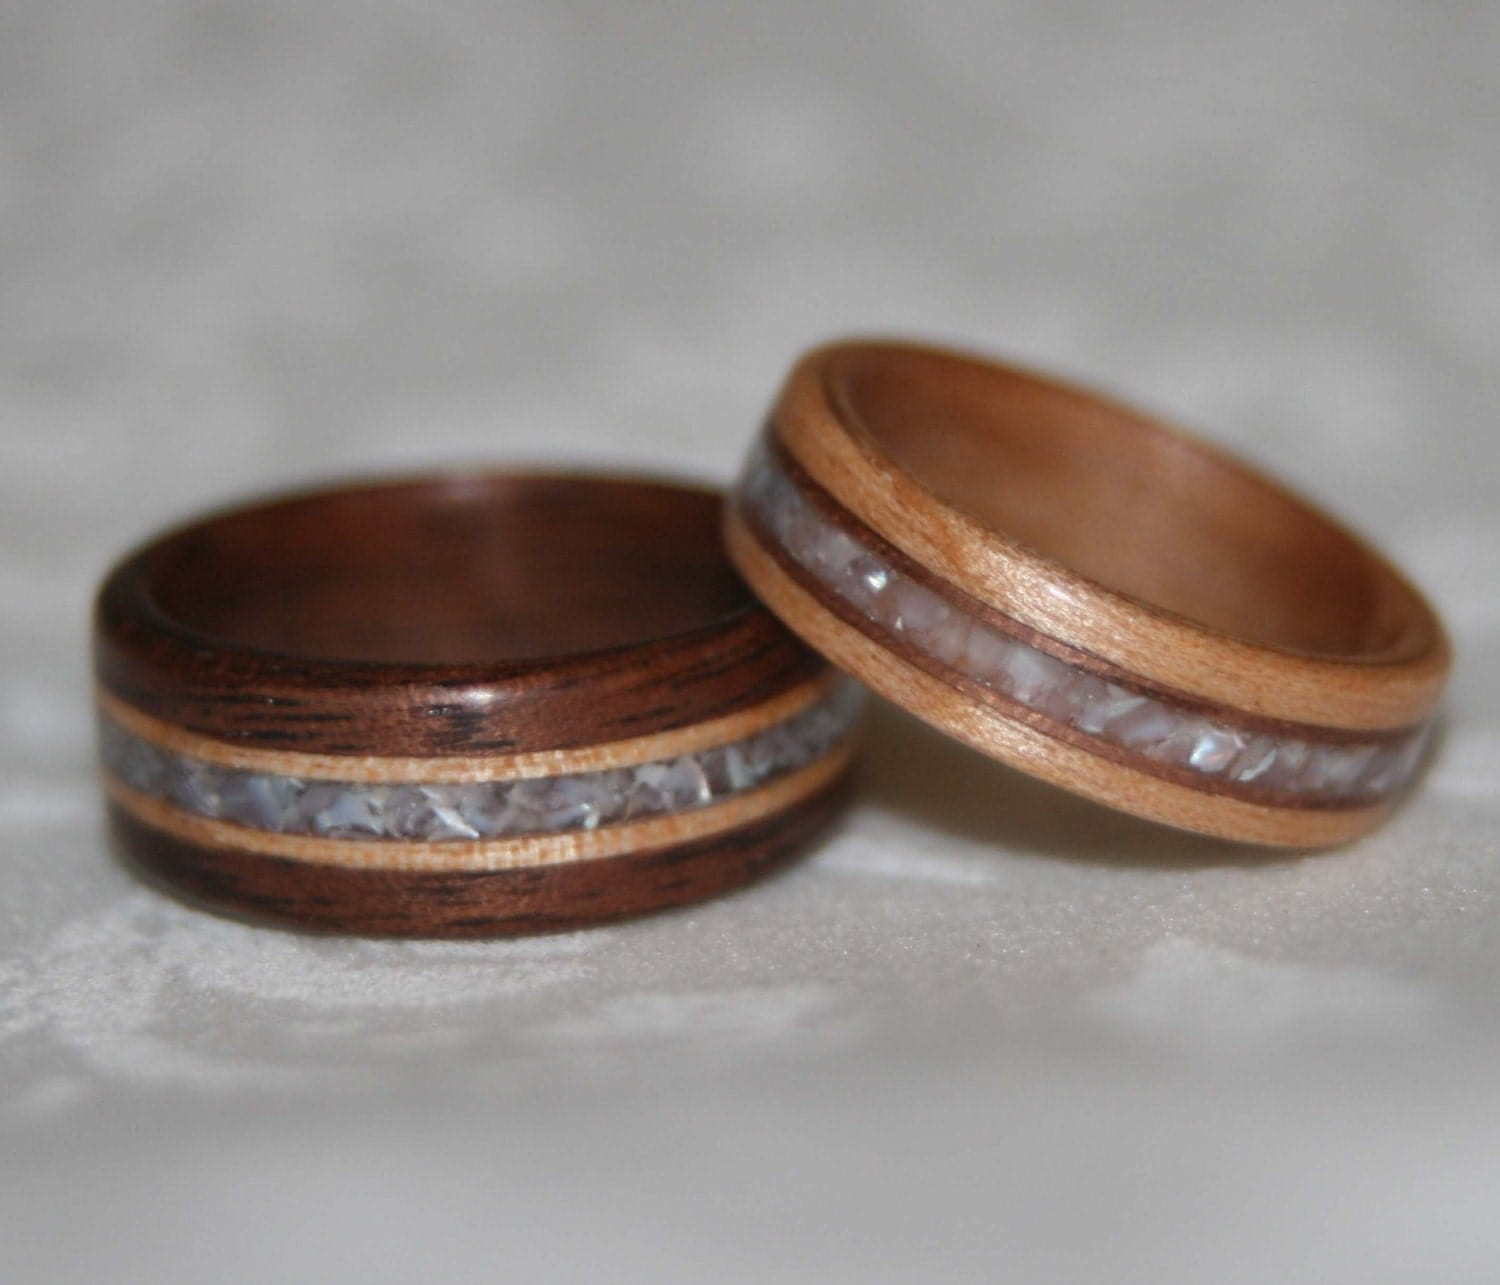 Set Of Custom Wooden Wedding Bands With Wood Accents And Stone